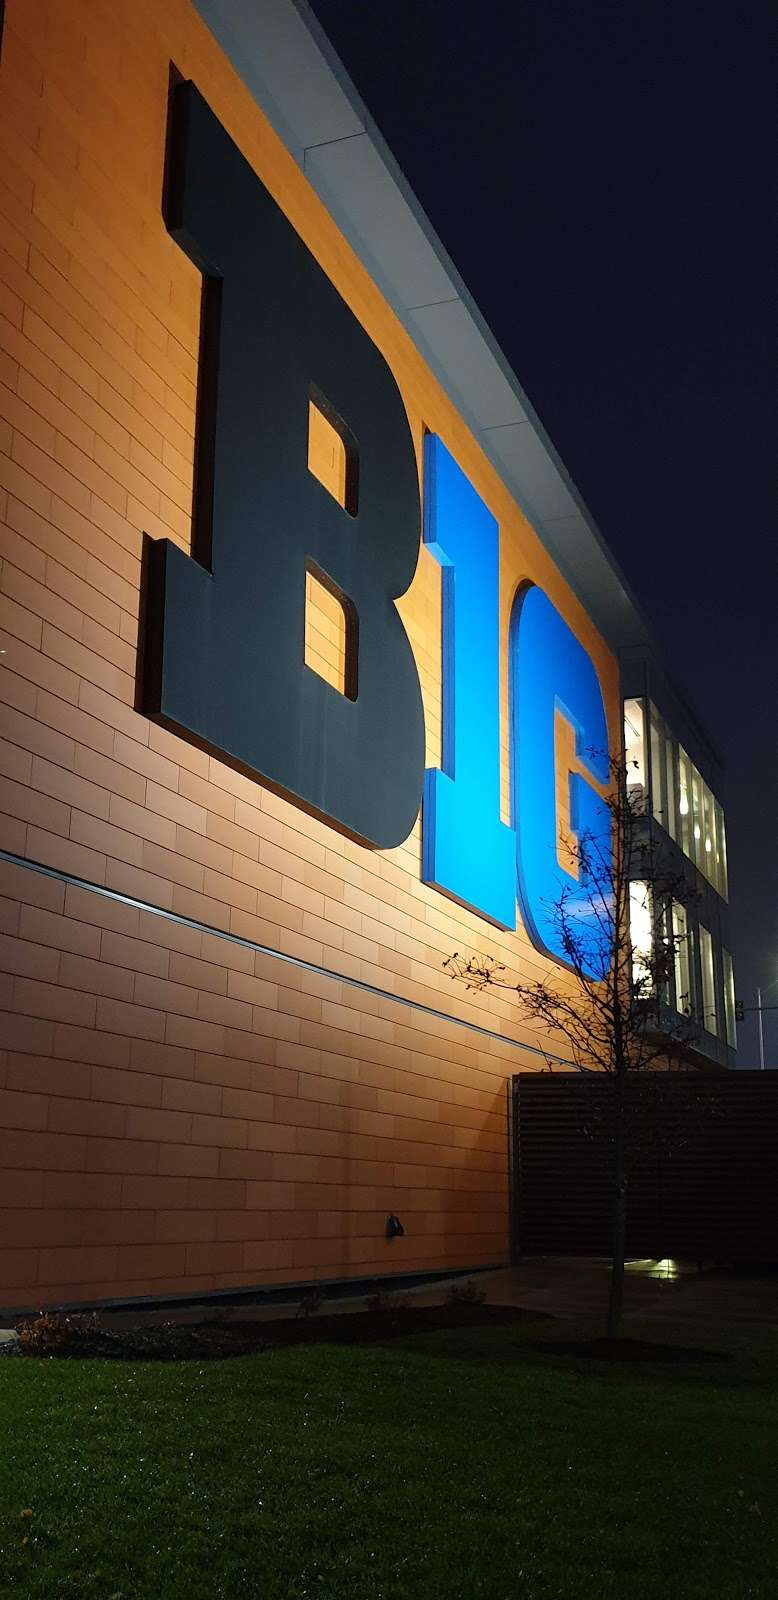 Big Ten Conference - museum  | Photo 7 of 10 | Address: 5440 Park Pl, Rosemont, IL 60018, USA | Phone: (847) 696-1010